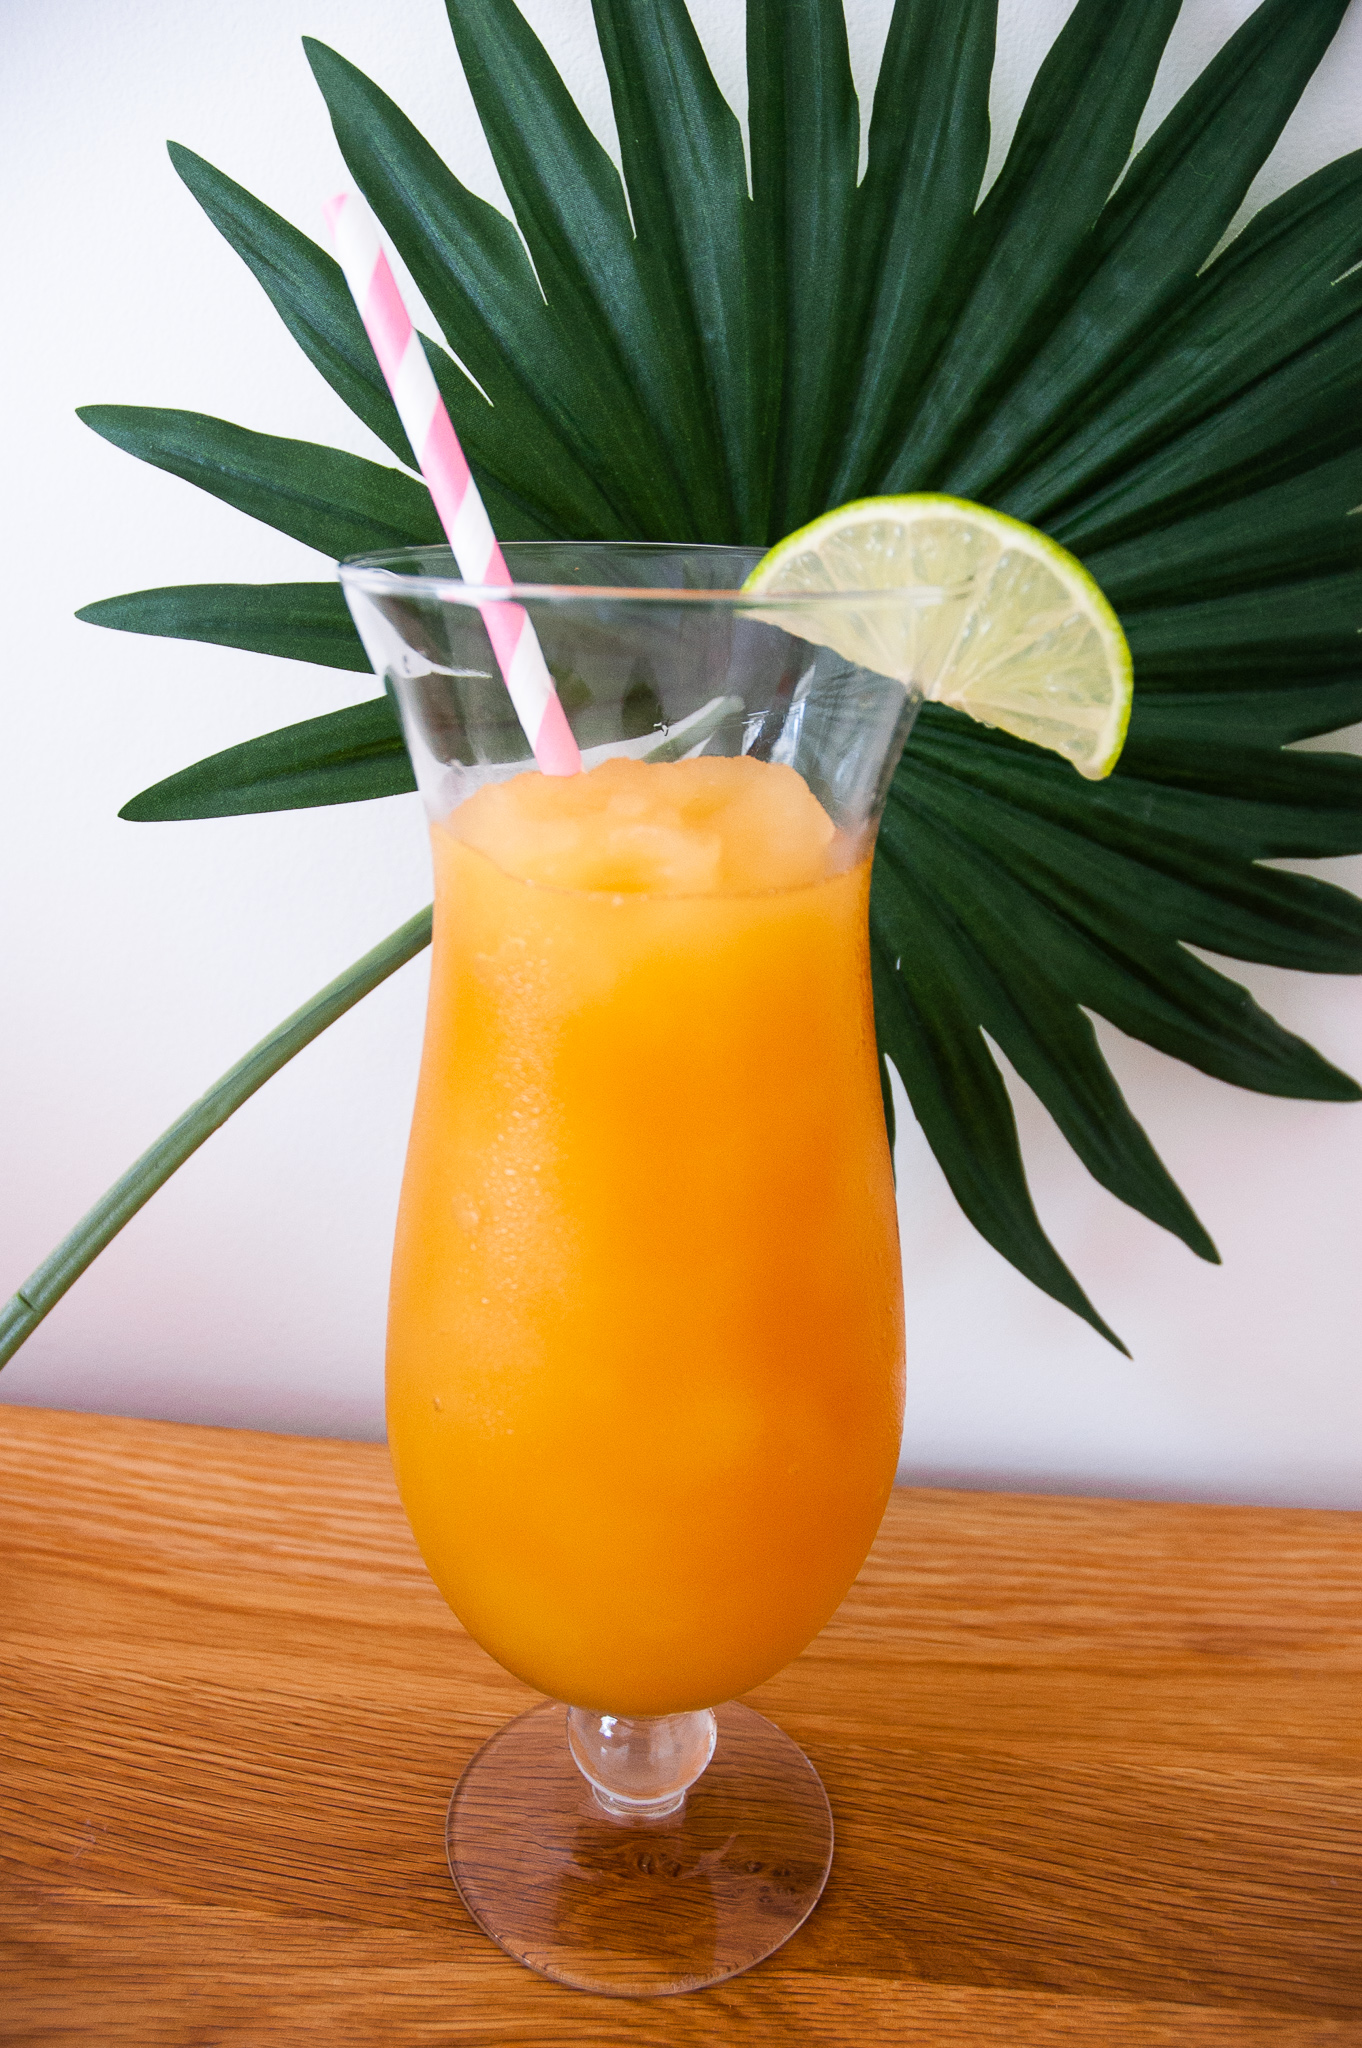 Pineapple and Orange Rum Slush in a tall glass in front of a palm leaf